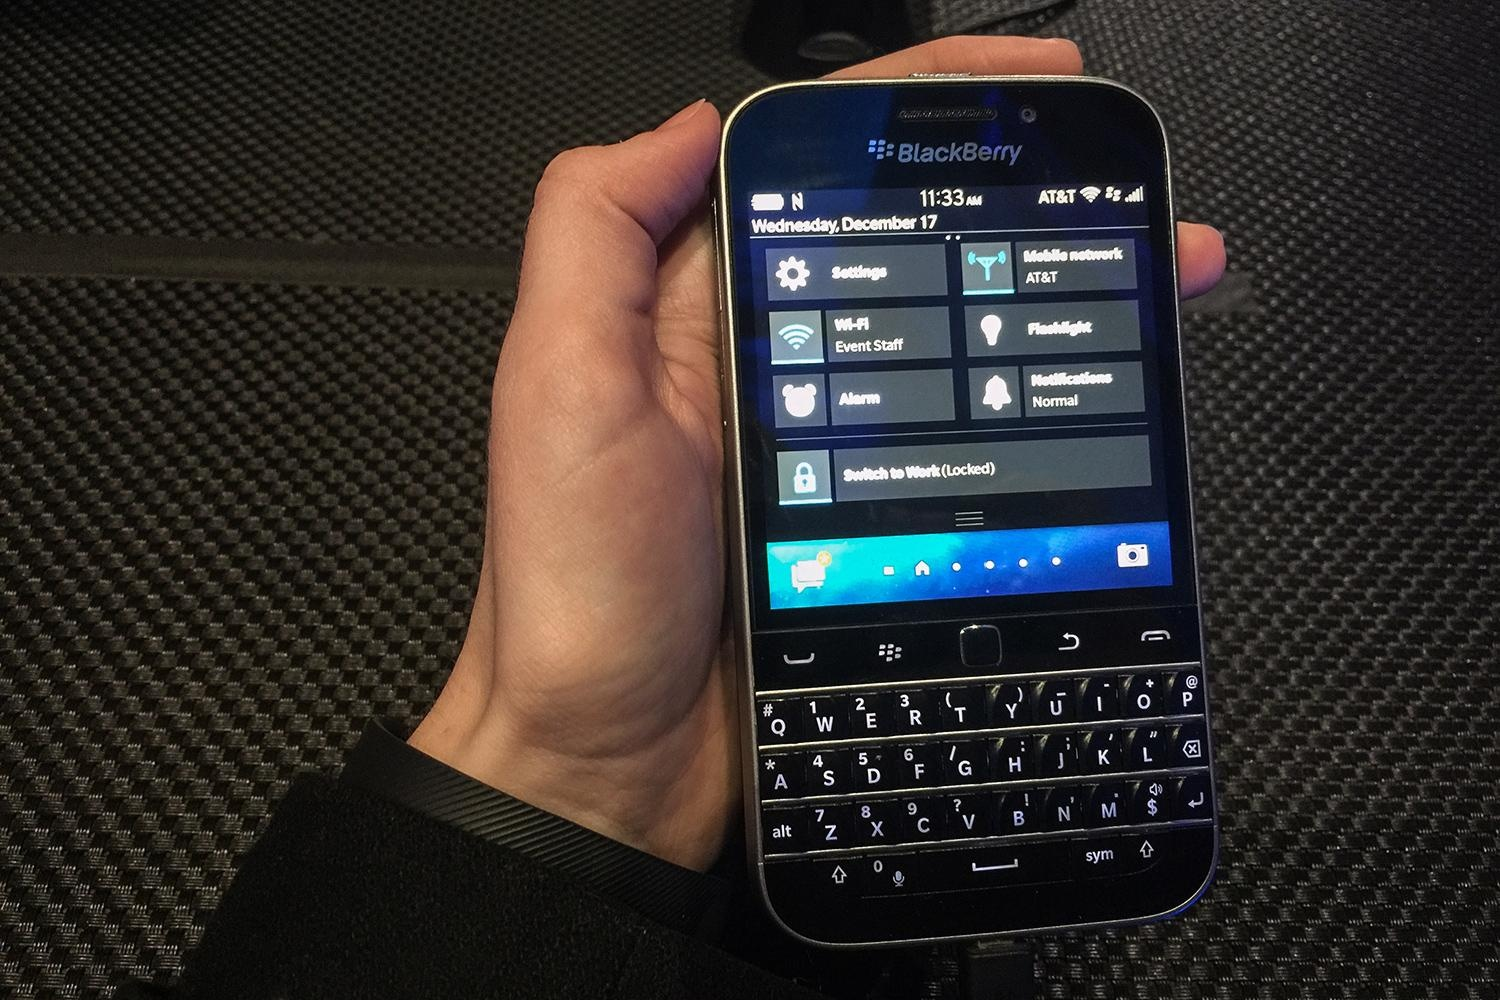 blackberry-classic-hands-on-1